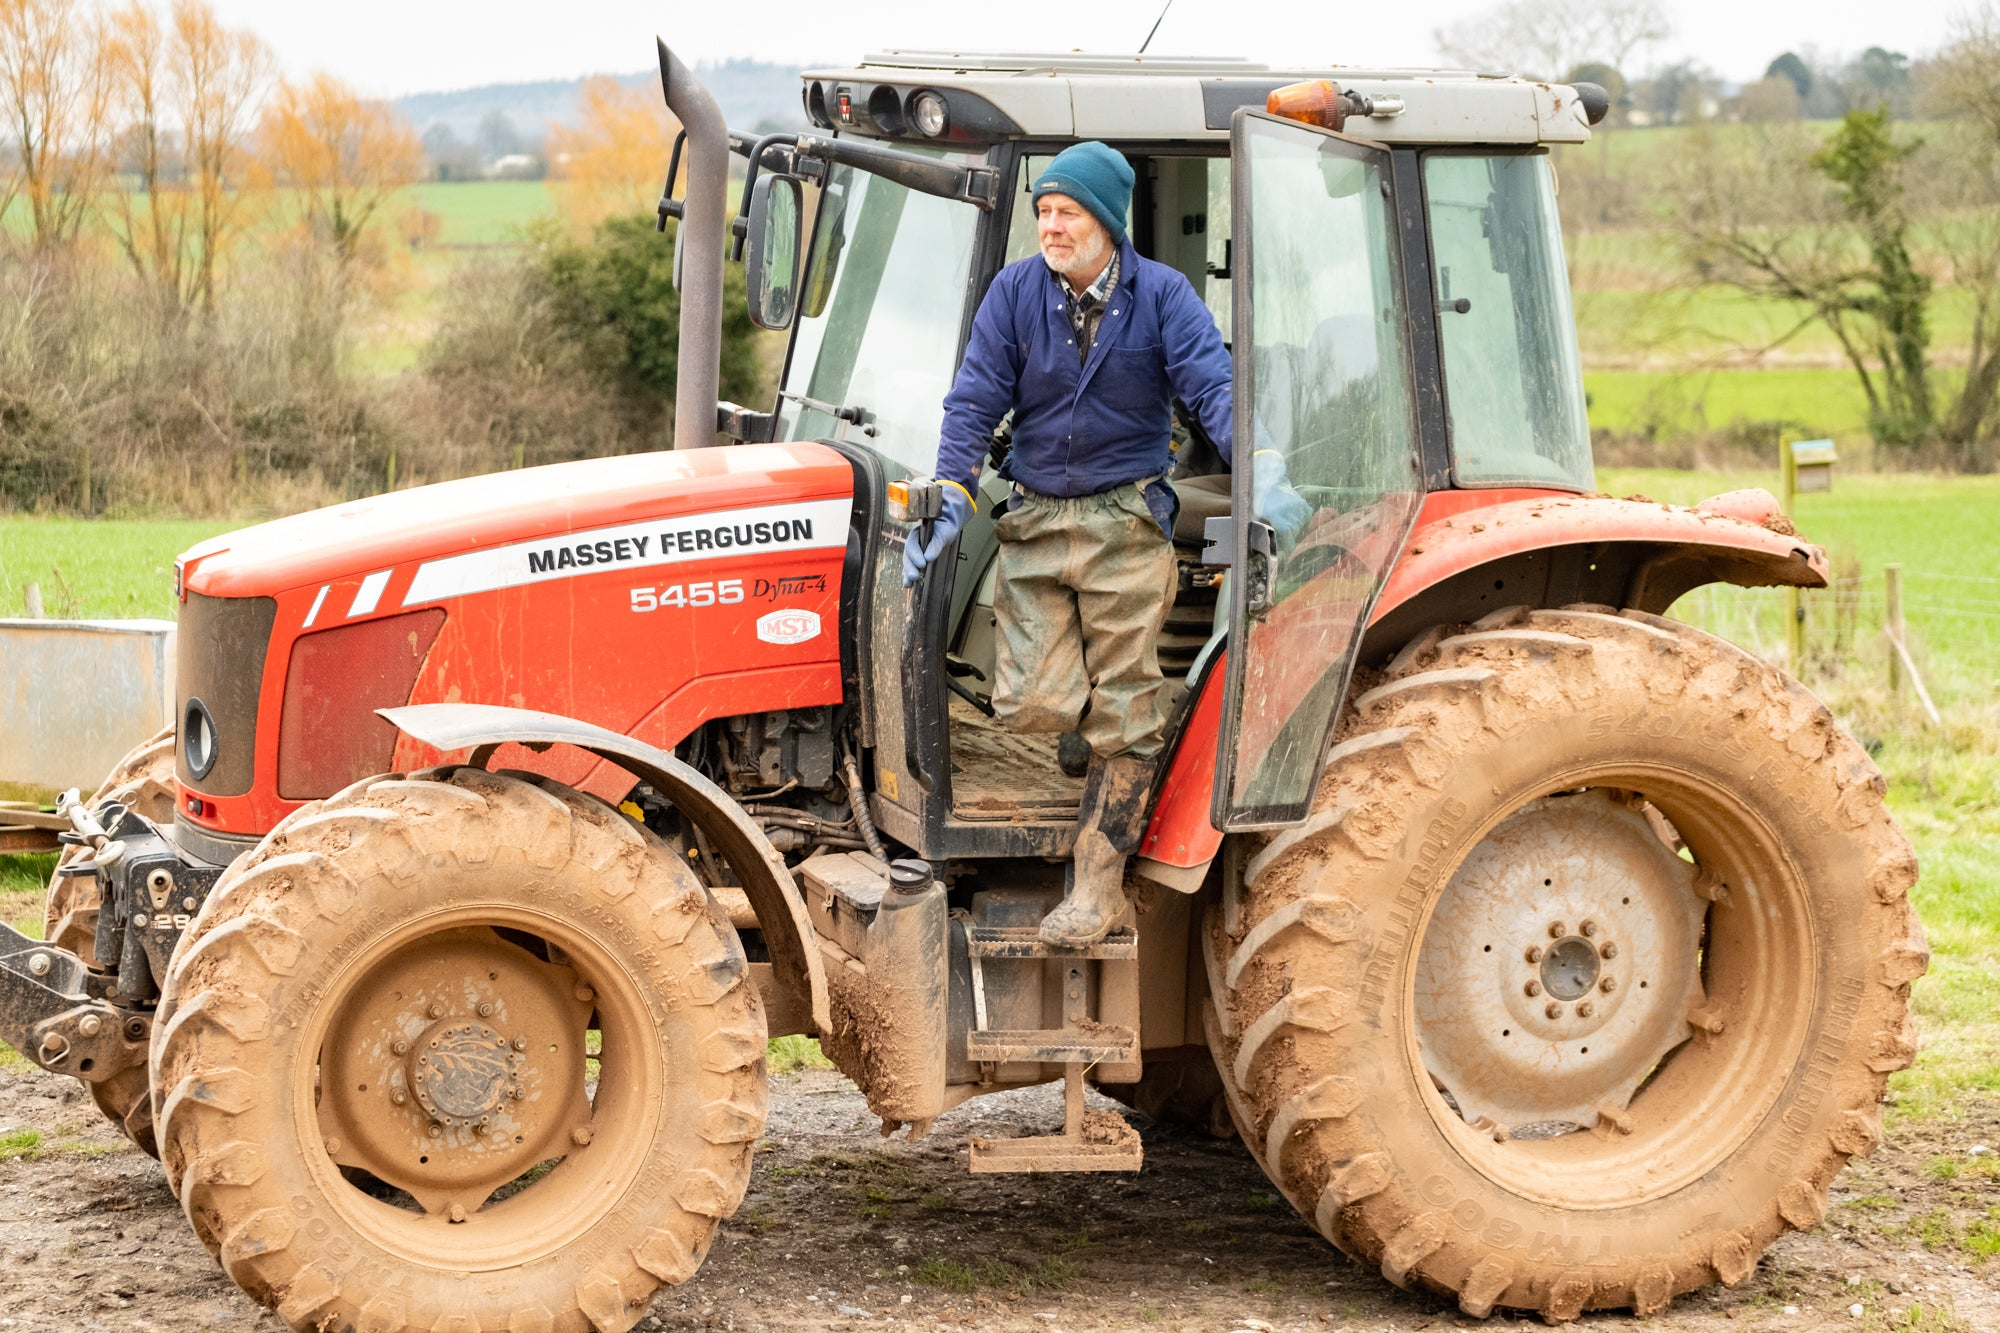 Henry_Gent_in_Woolly_hat_and_waterproof_trousers_coming_down_steps_of_his_tractor.jpg